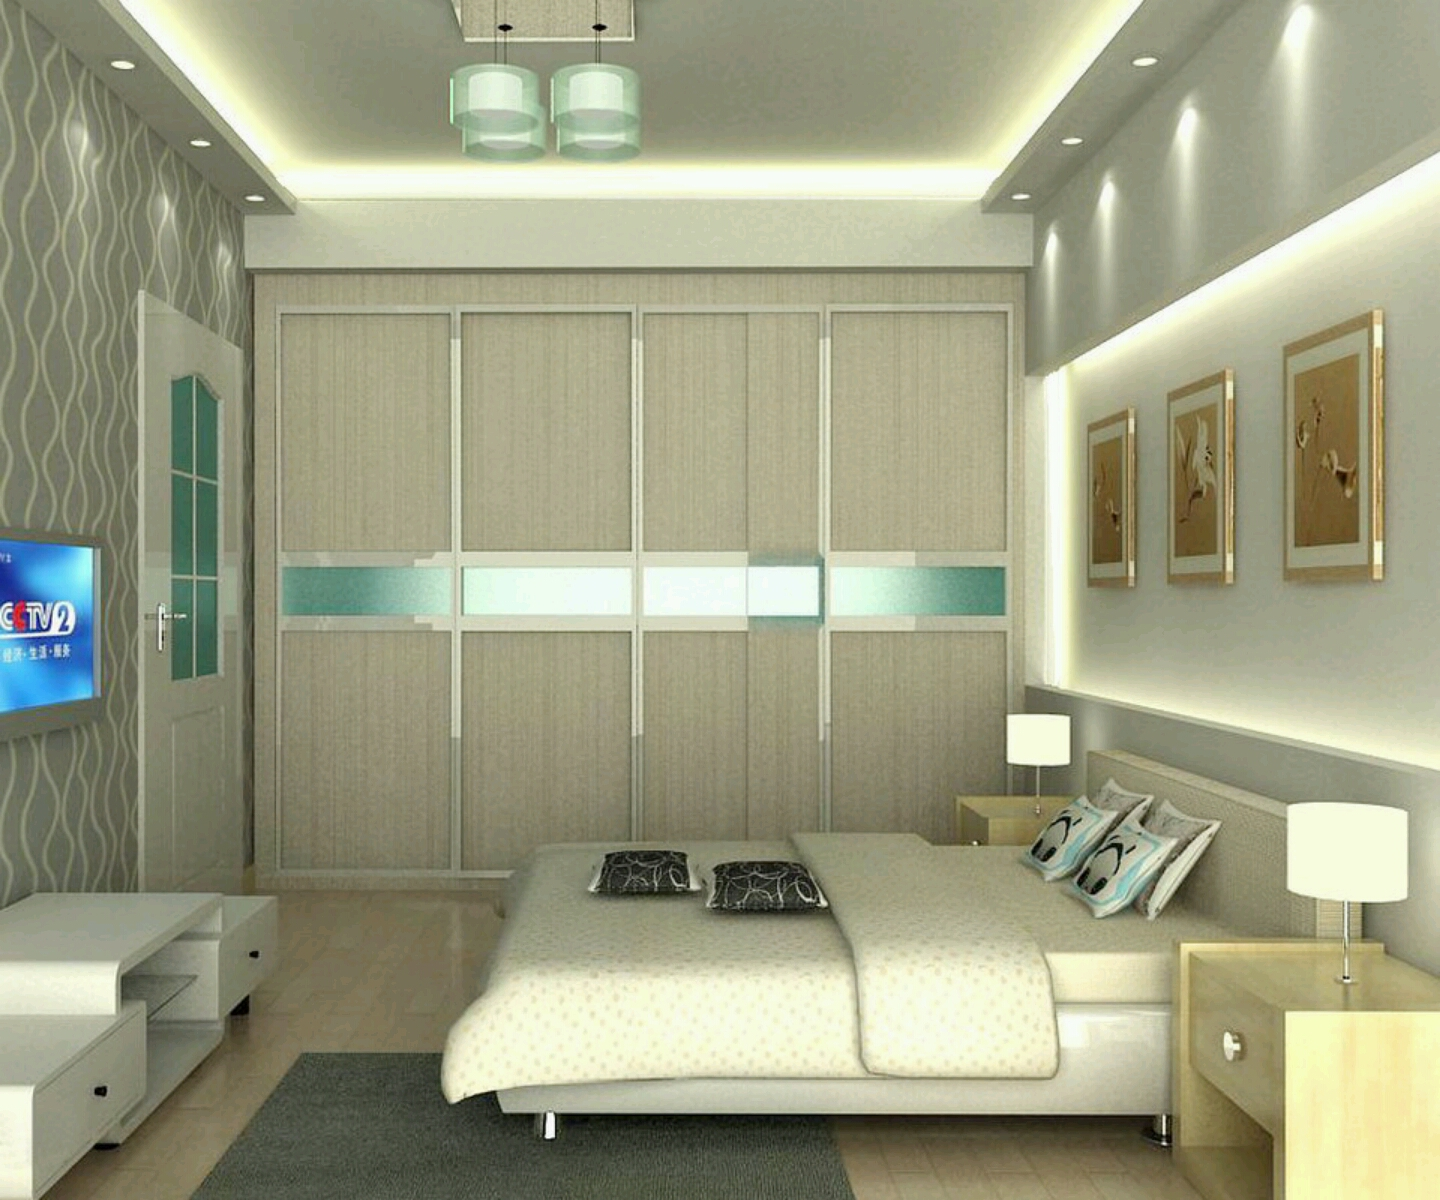 New home designs latest modern homes bedrooms designs Modern bedroom designs 2012